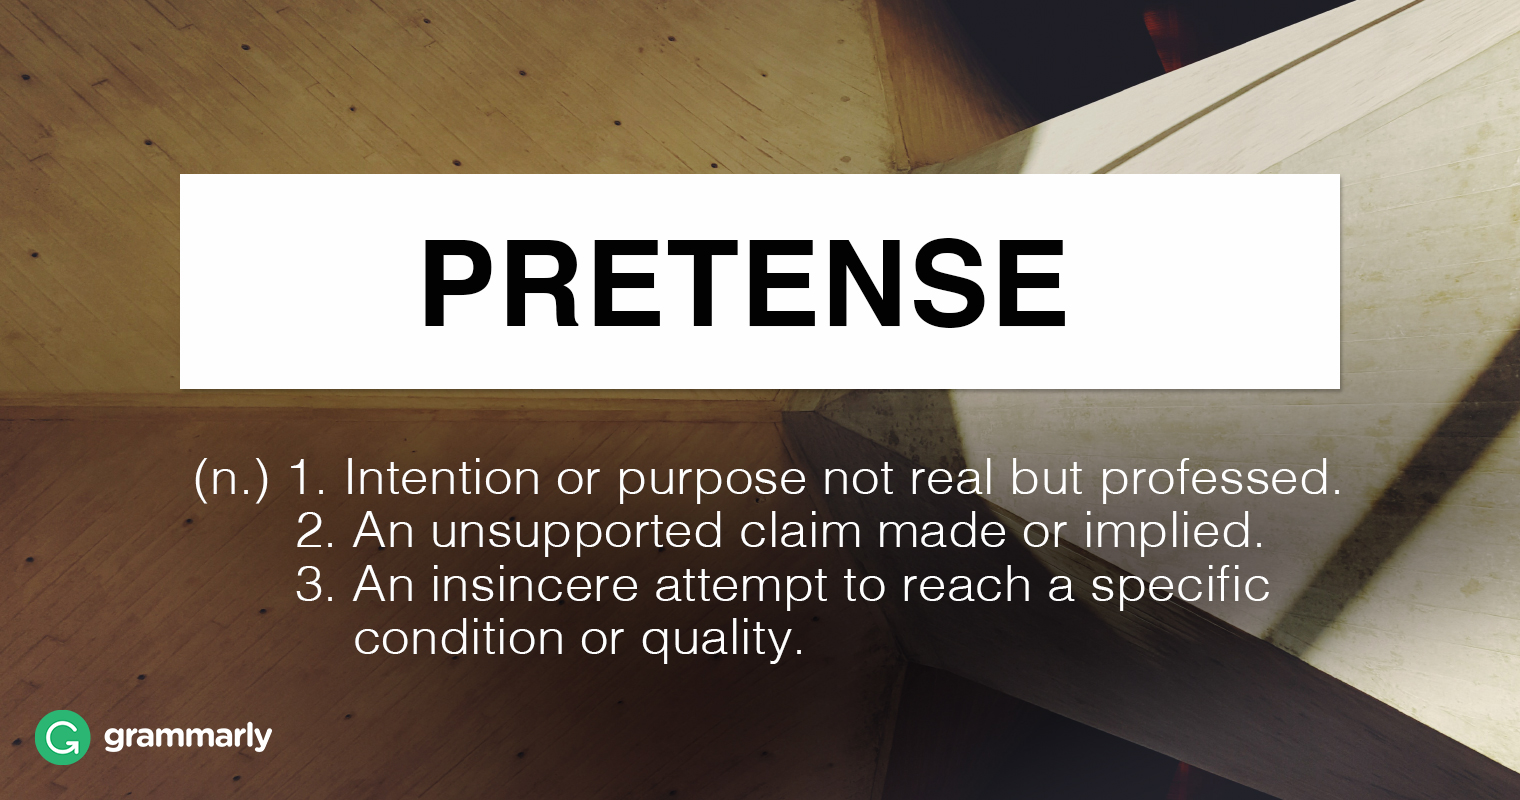 Pretense or Pretence—What's Right?